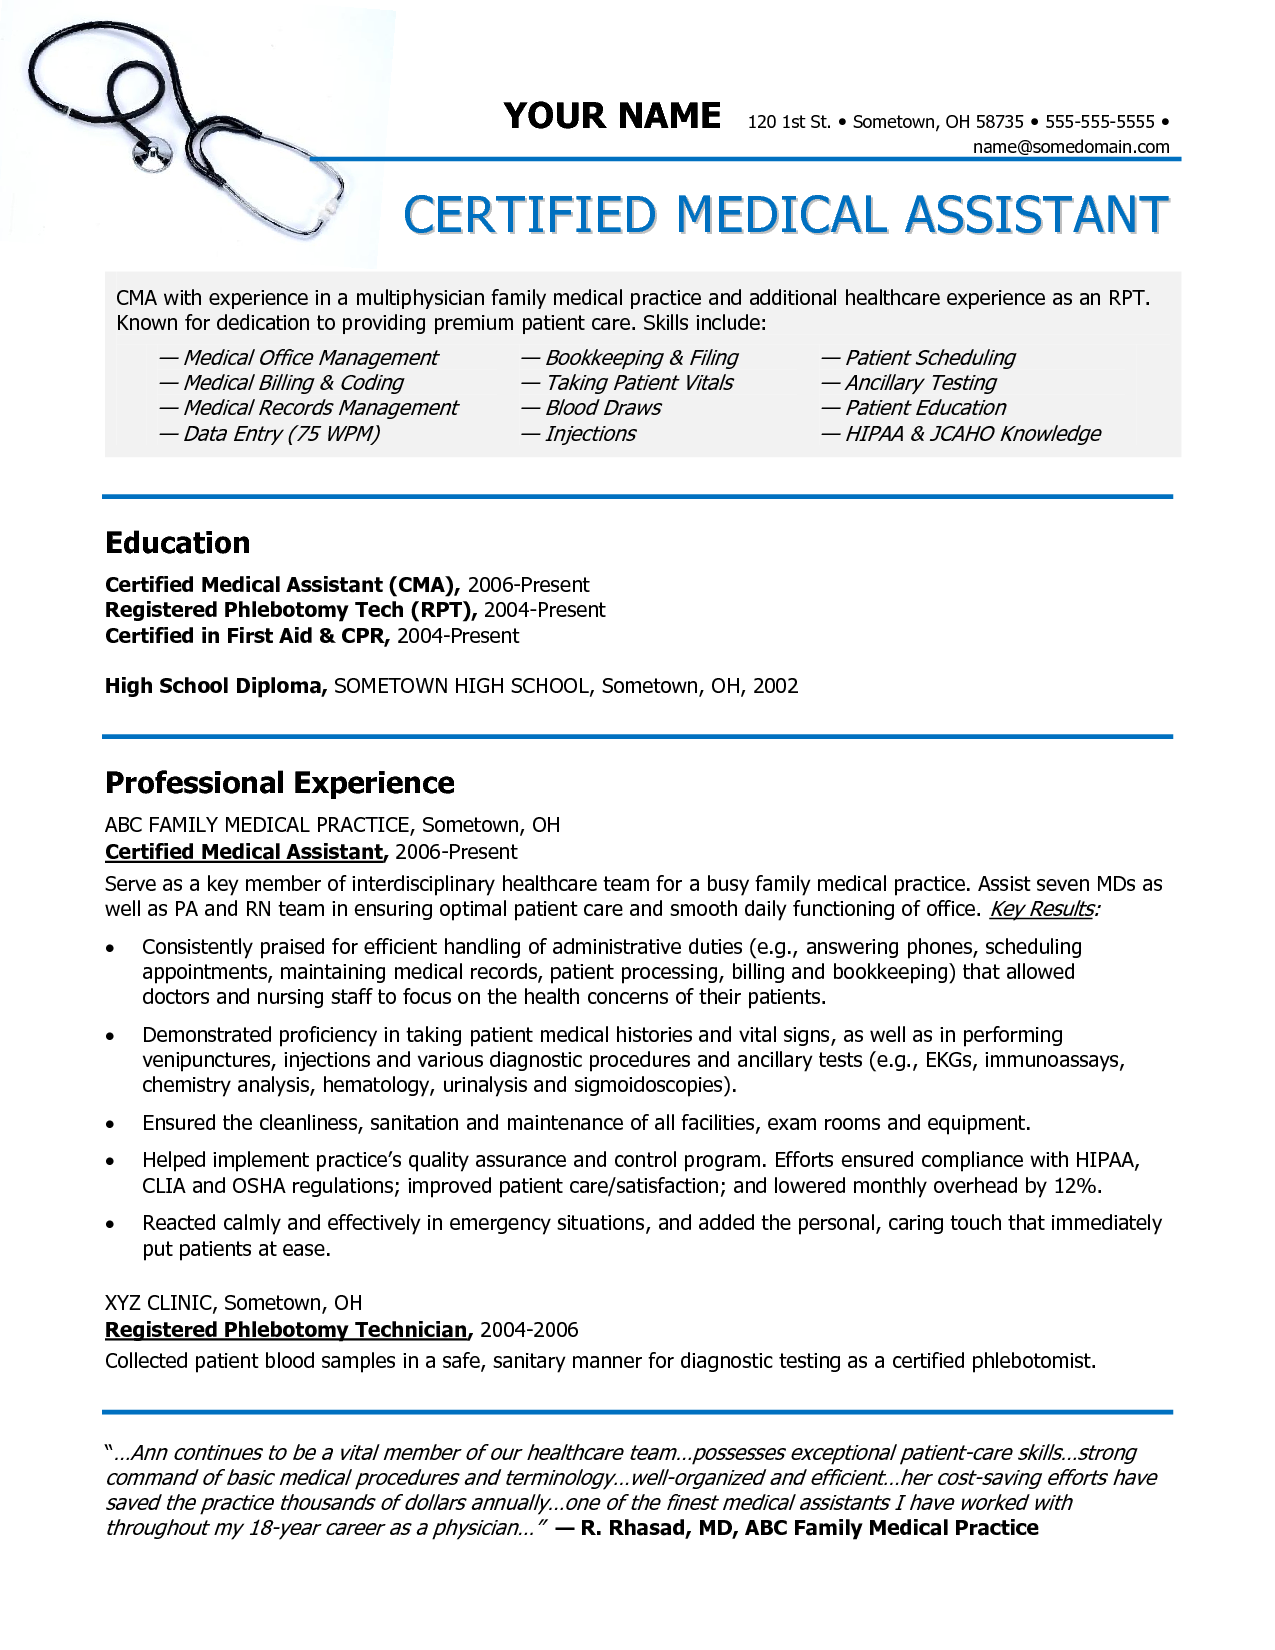 medical assistant resume entry level examples 18 medical assistant professional medical assistant resume